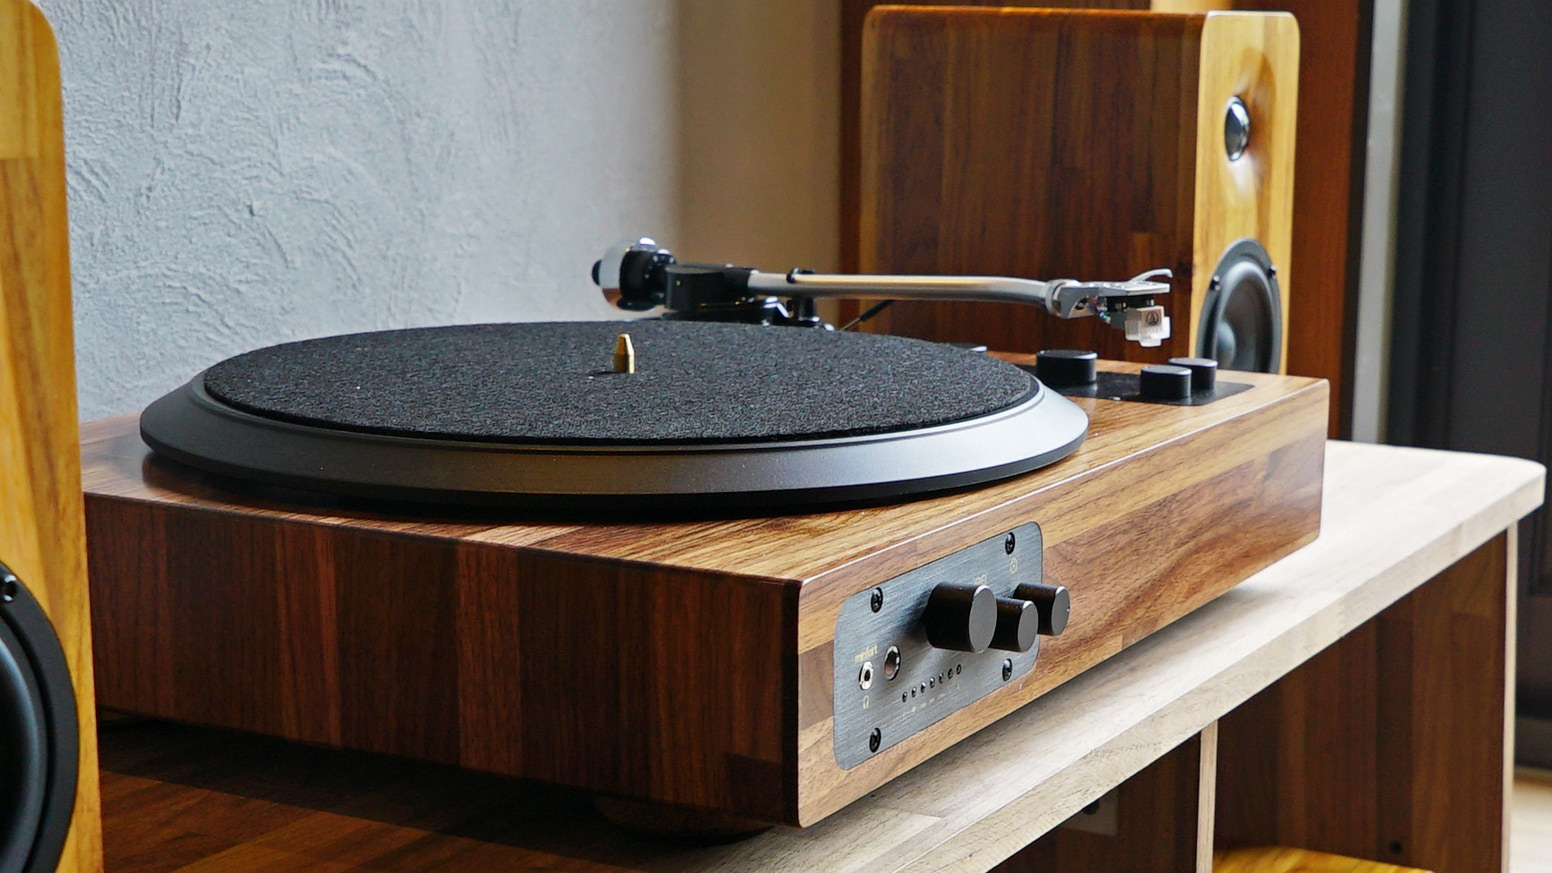 Enjoy all your vinyl records AND online playlists: Minfort's wooden turntable is the perfect mix of retro and modern.